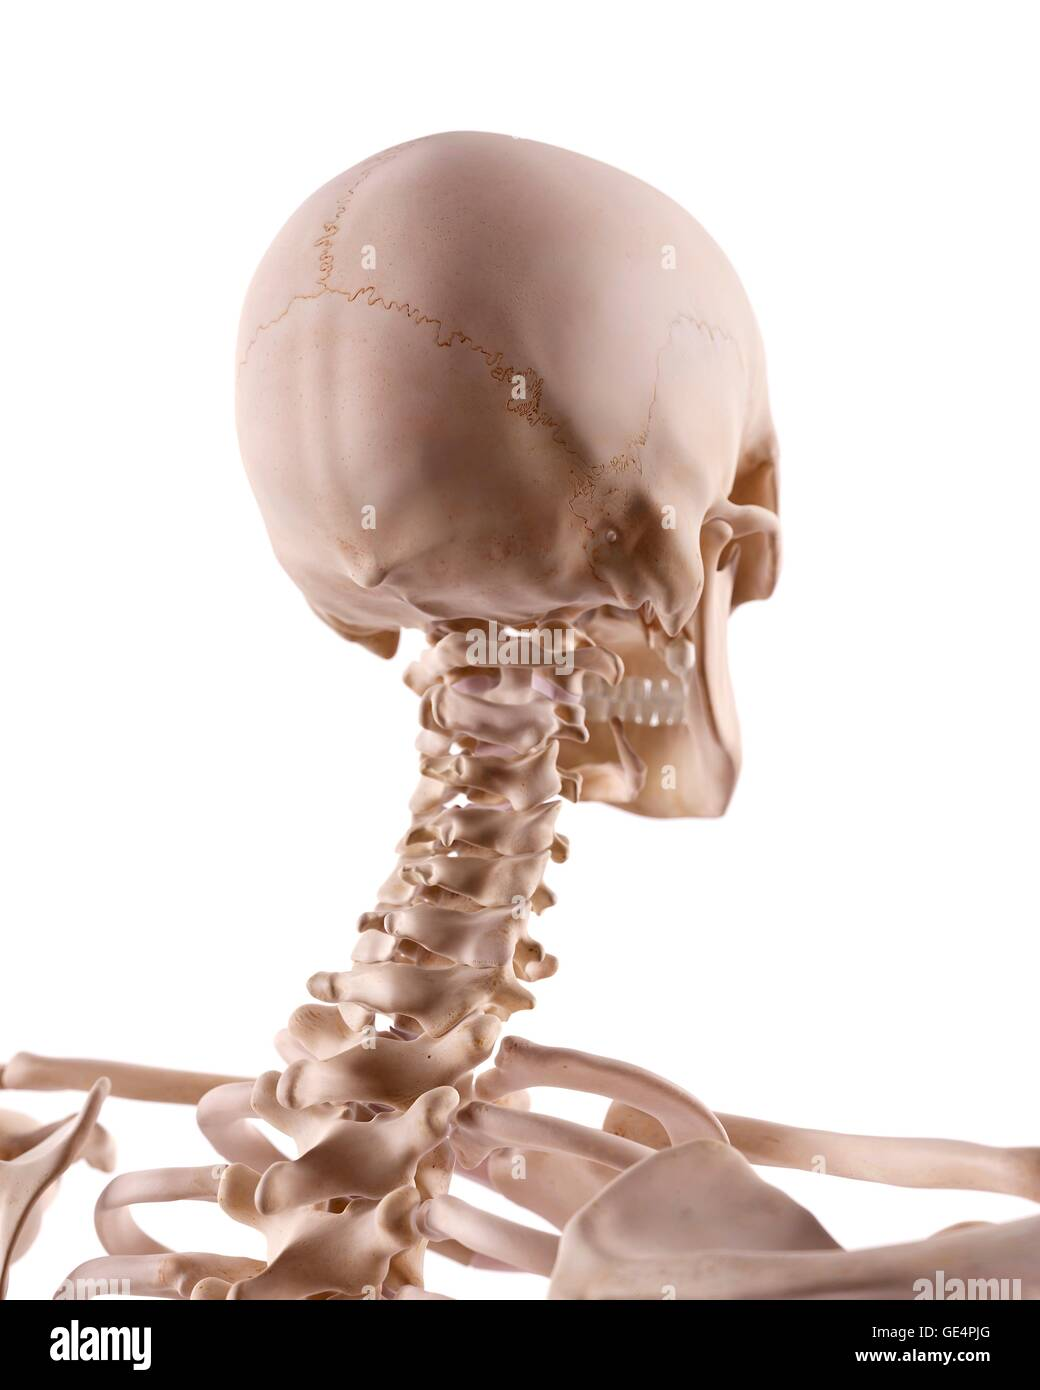 Human Skull And Cervical Spine Illustration Stock Photo 111972968